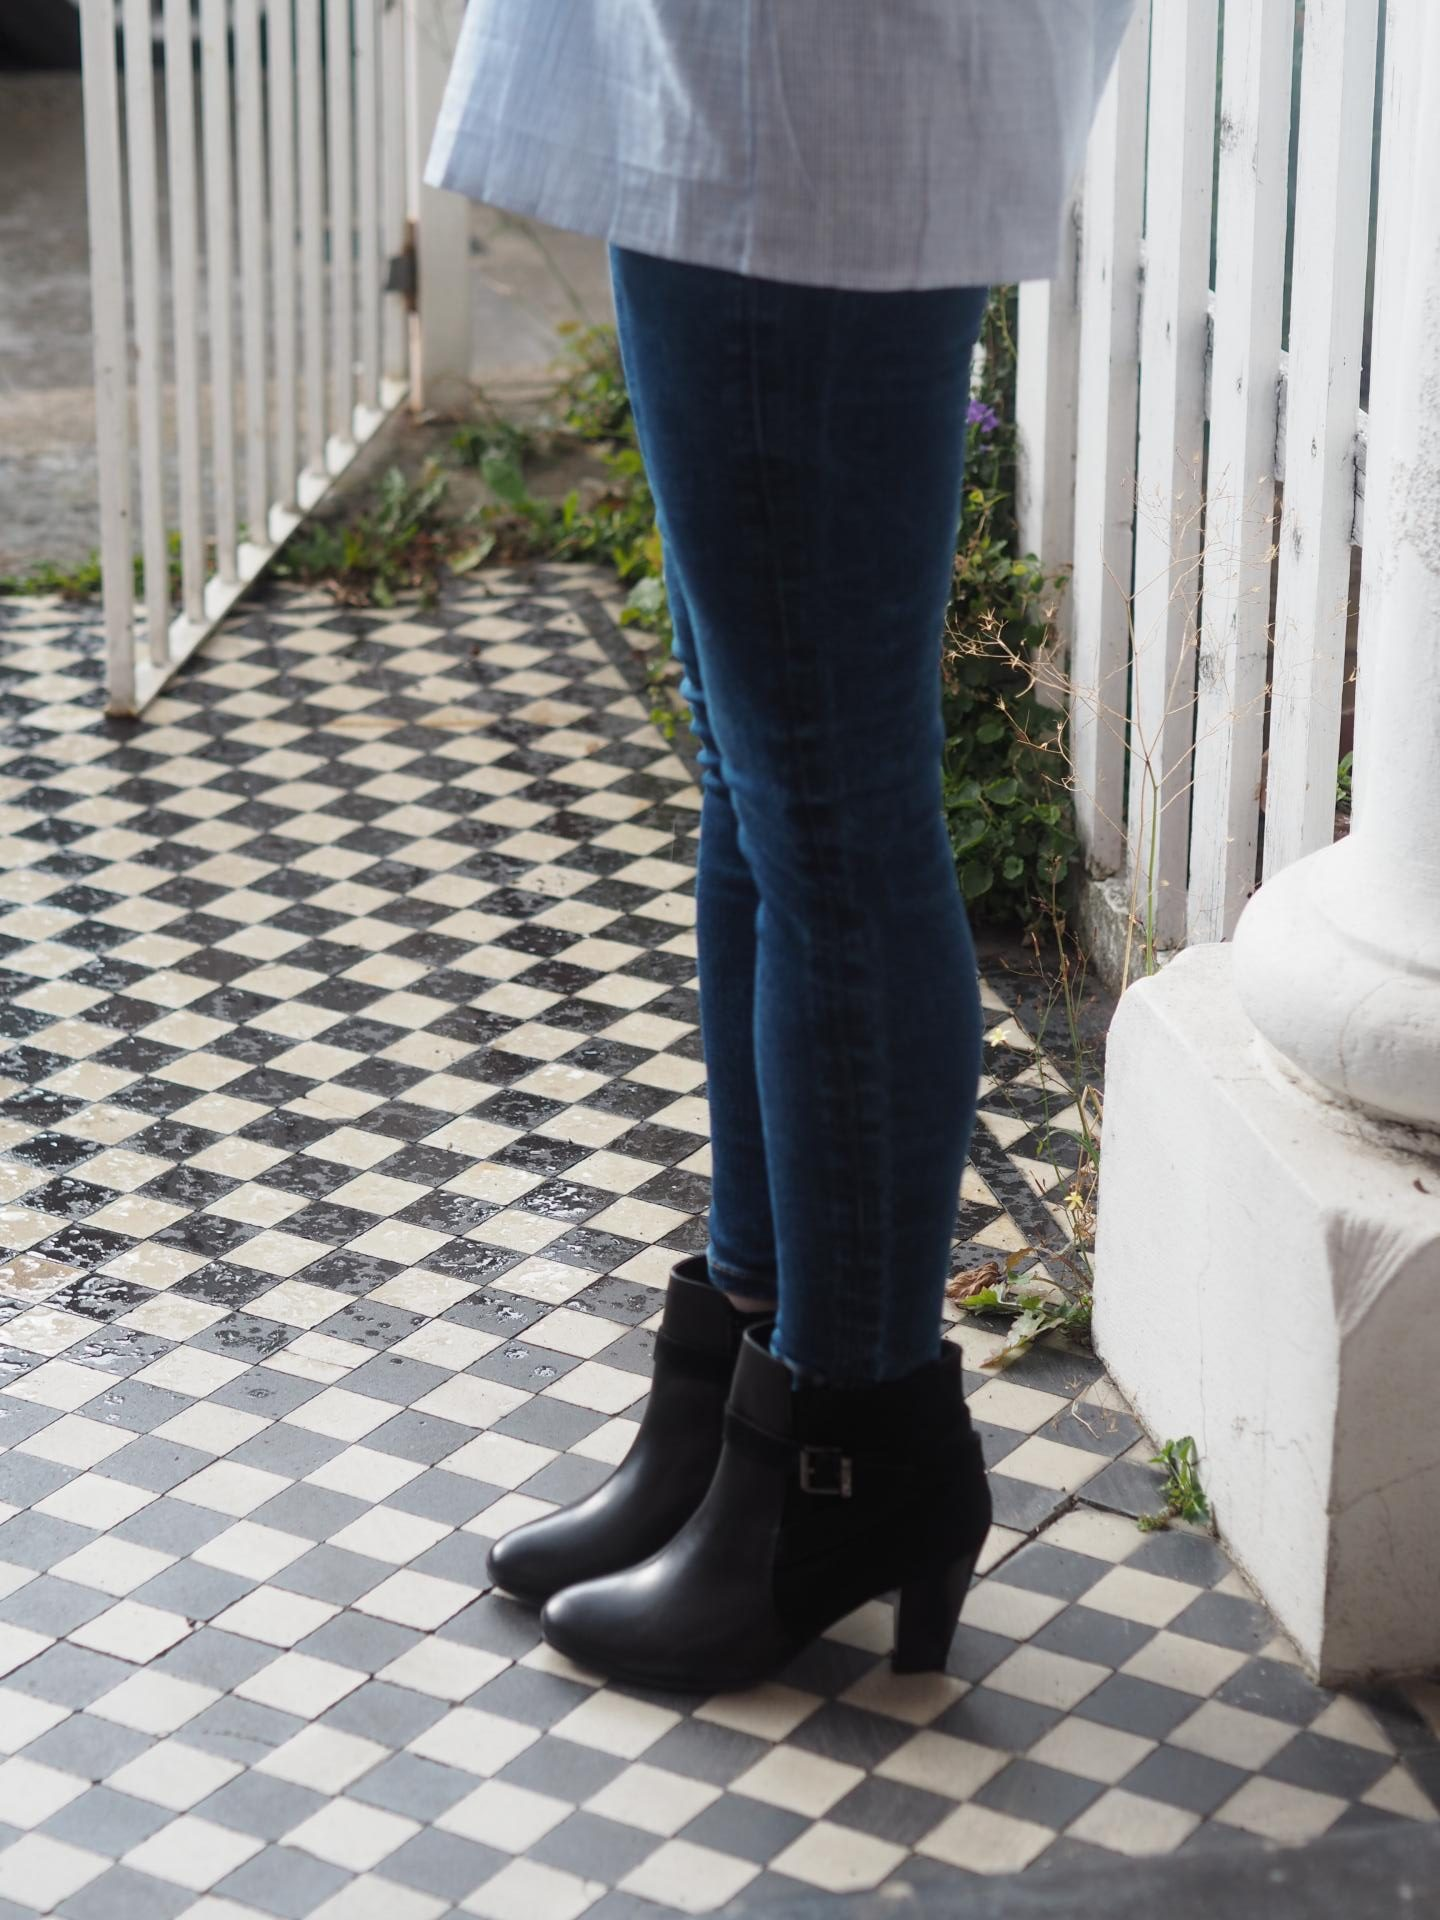 Topshop skinny jeans paired with Suede ankle boots